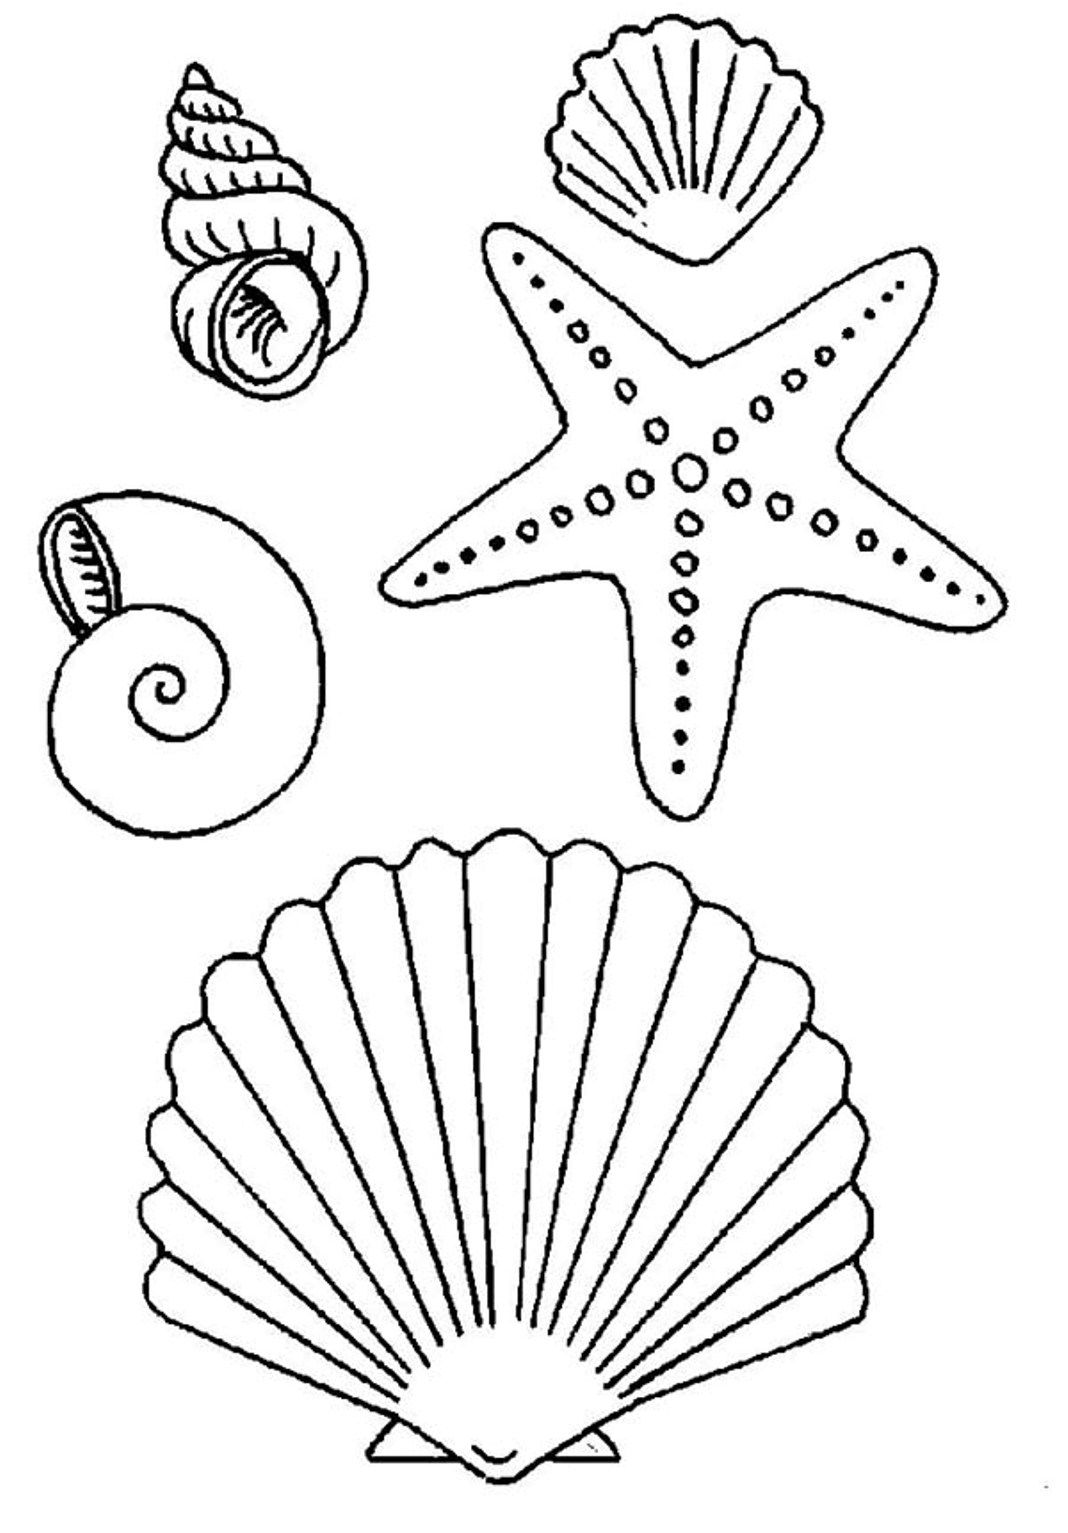 download and print seashell and starfish coloring pages - Seashell Coloring Pages Printable